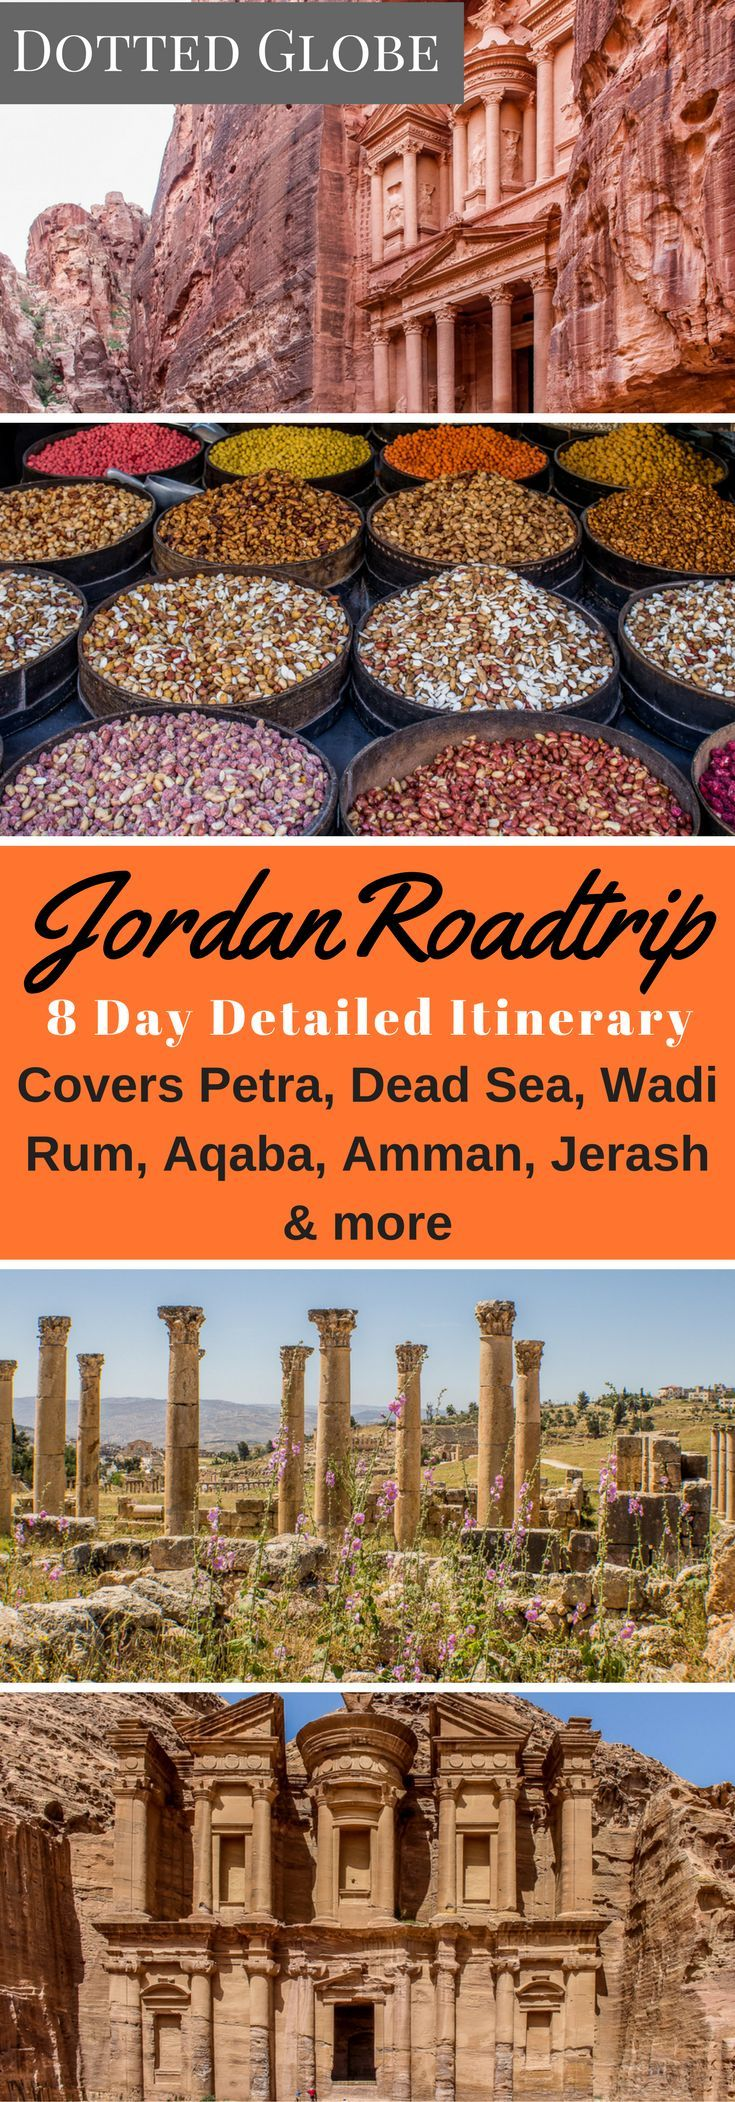 Dotted Globe's Jordan itinerary covers Petra, Dead Sea, Wadi Rum, Aqaba, Jerash, Amman and other major tourist attractions and is perfect for road-trip aficionados.